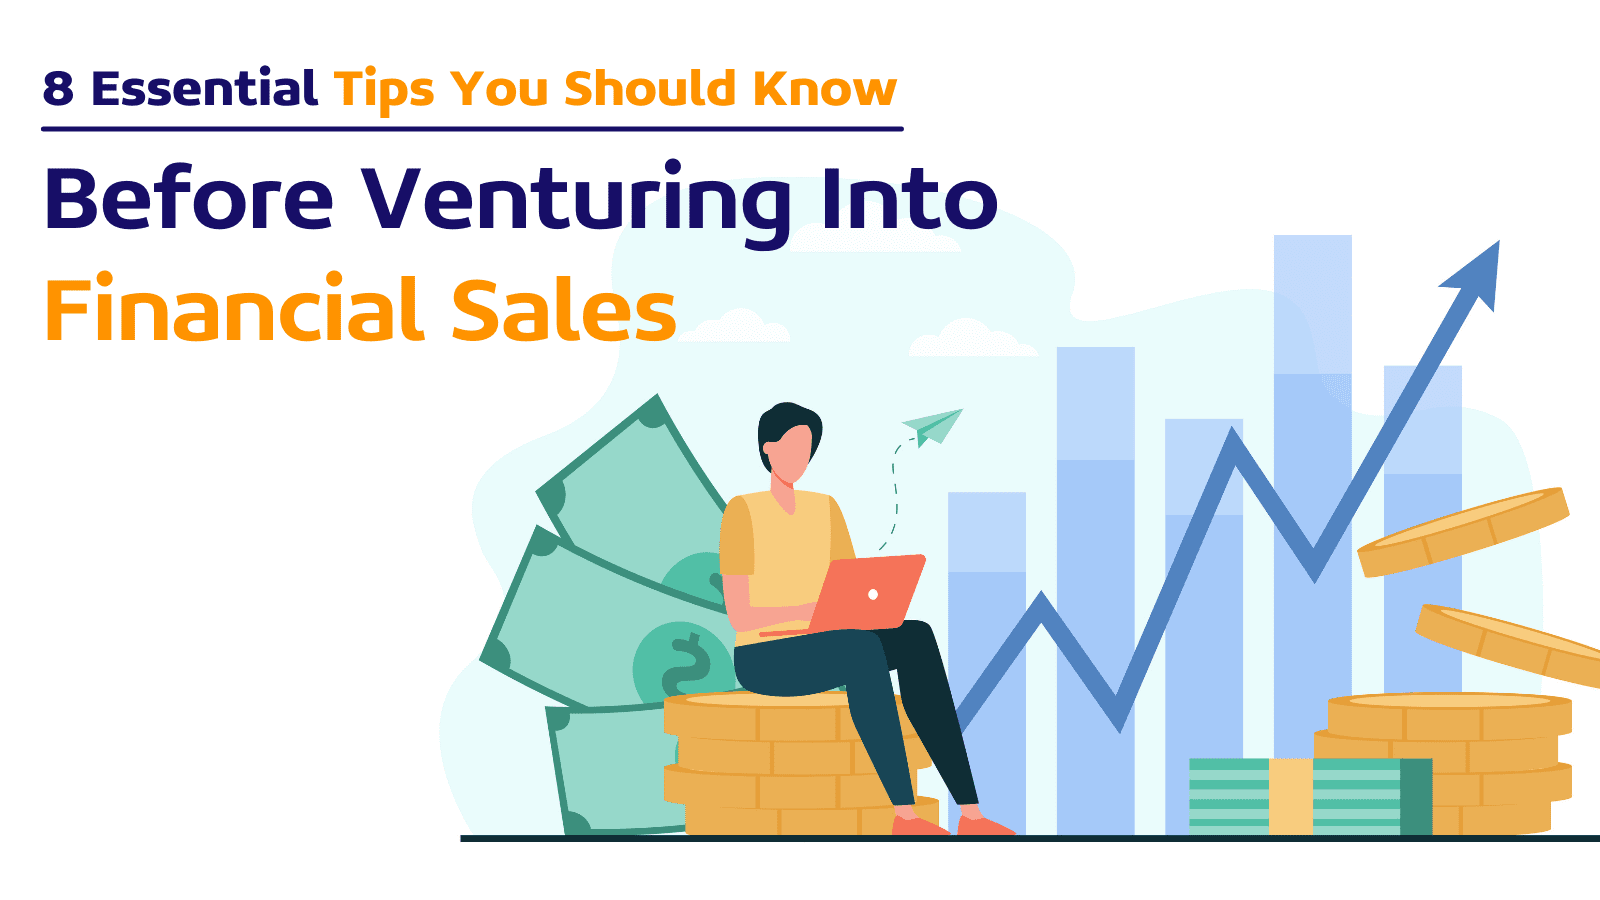 8 Indispensable Tips You Should Know Before Venturing Into Financial Sales